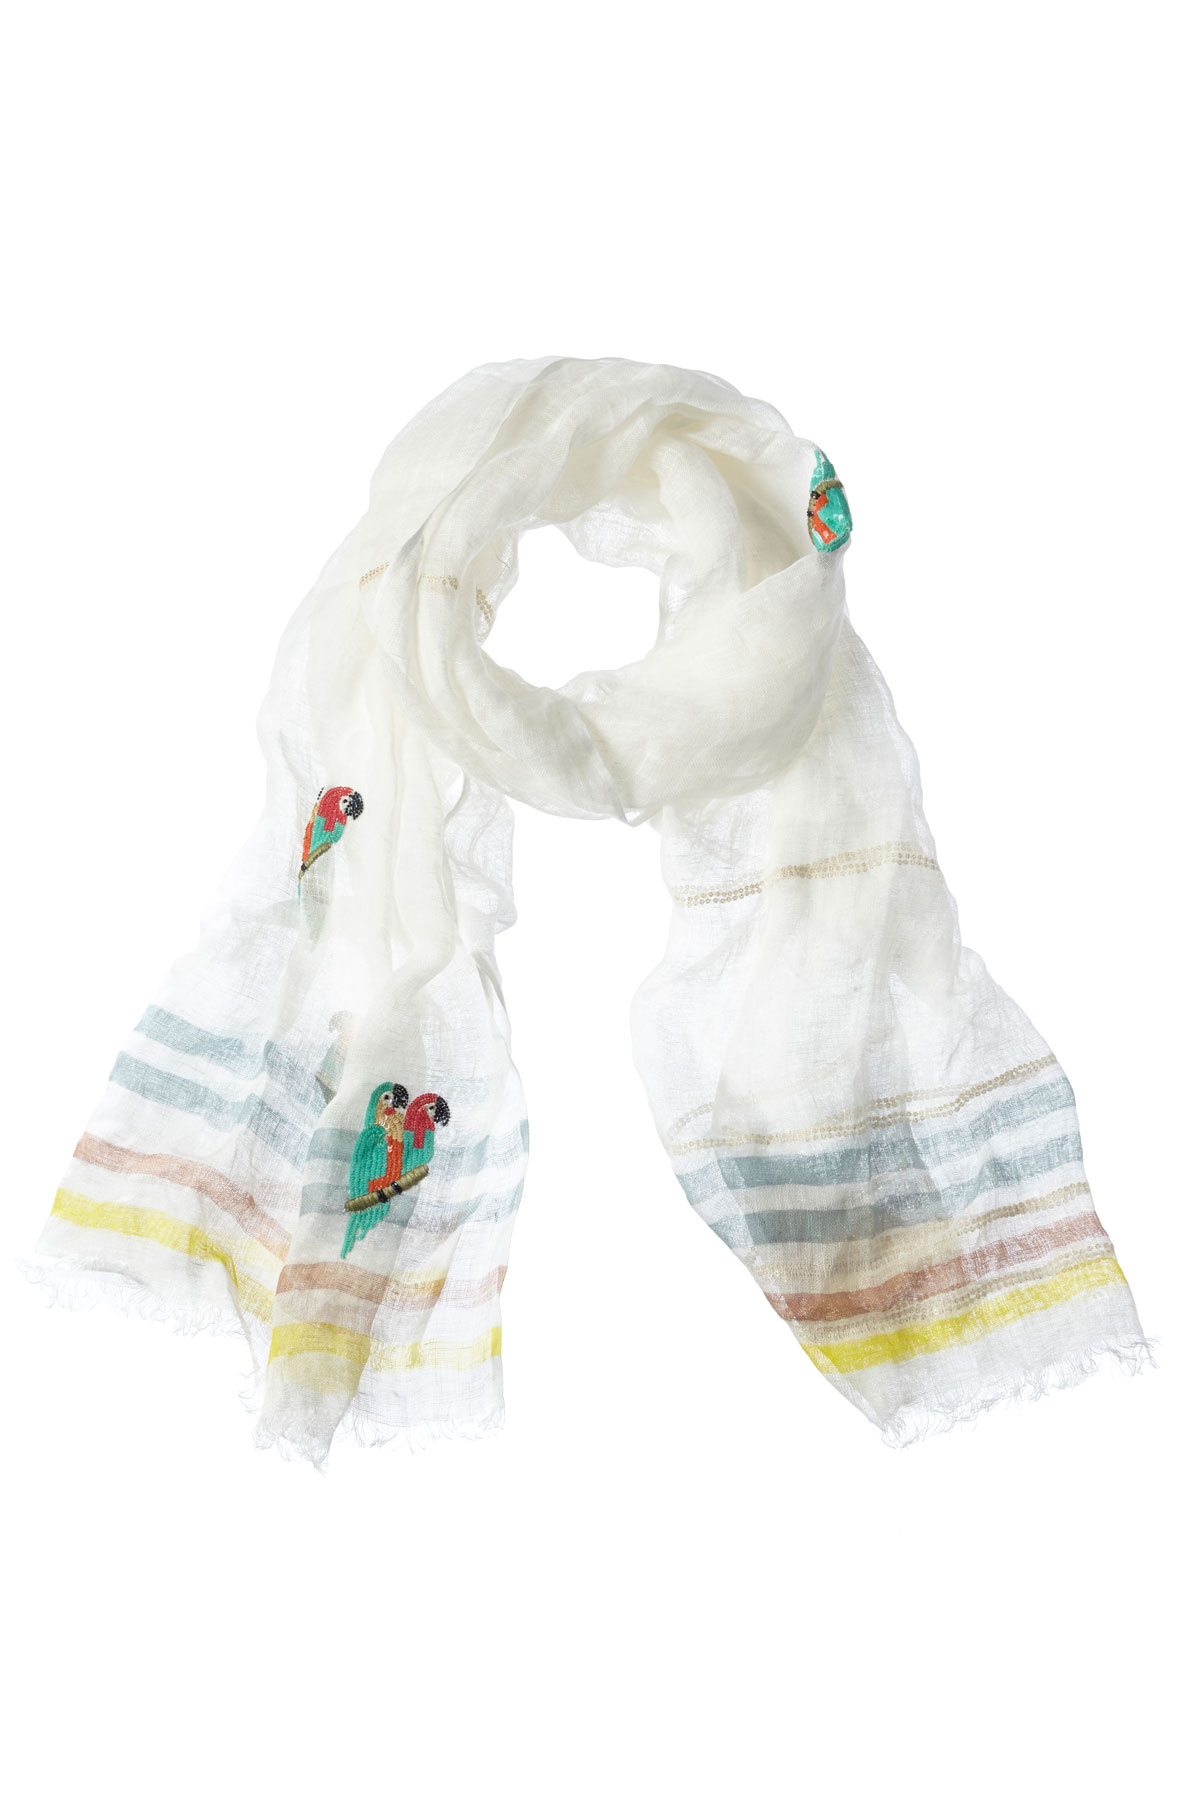 Beaded Parrot Scarf - White Lime Green